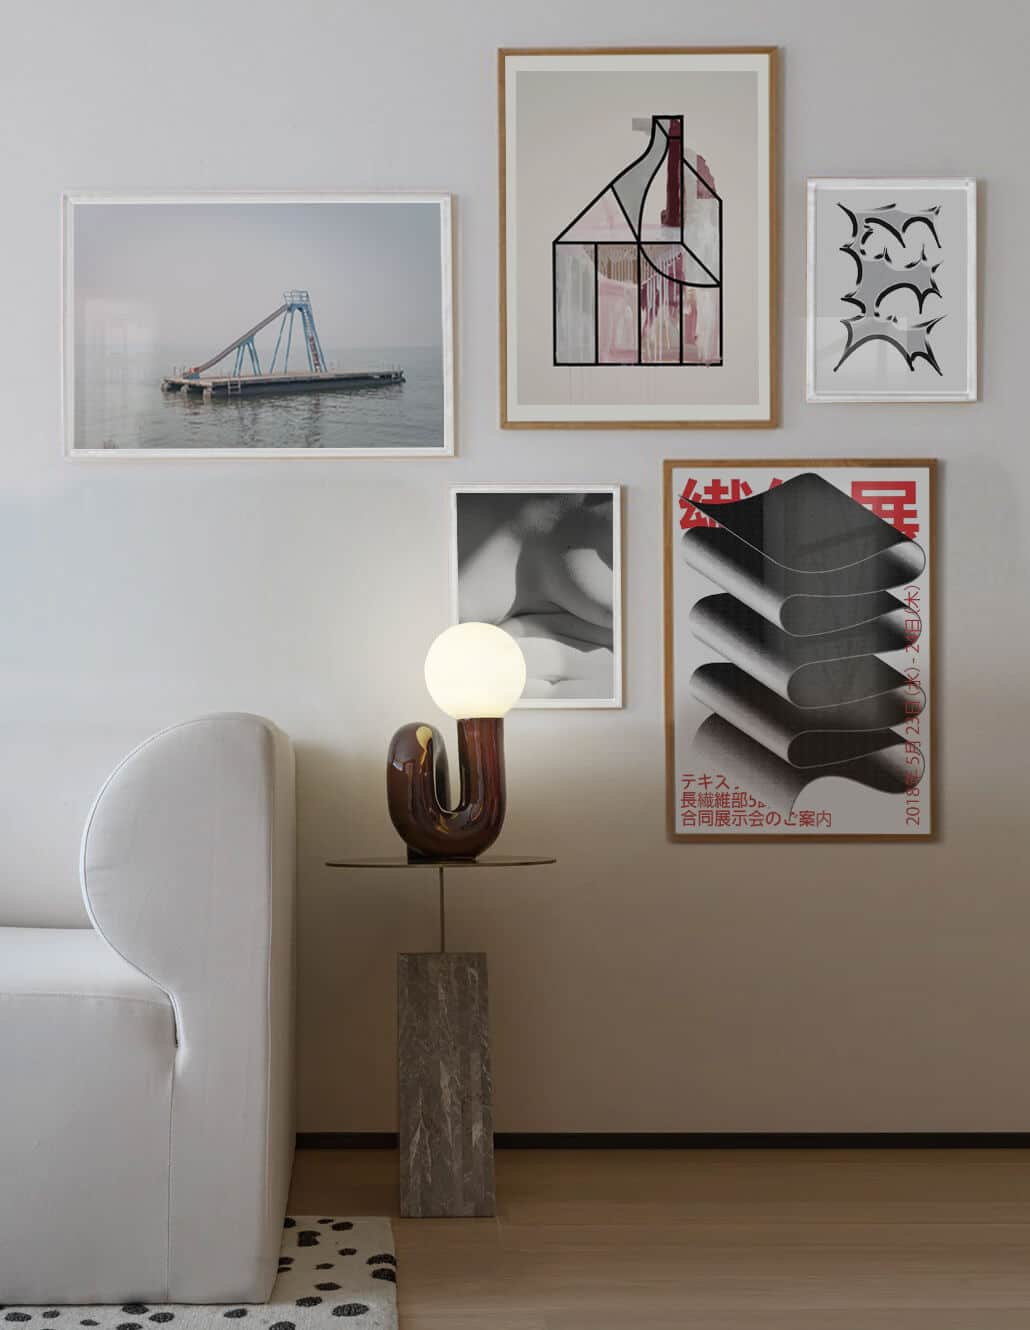 muted gallery wall hung on the wall of a chic living room interior